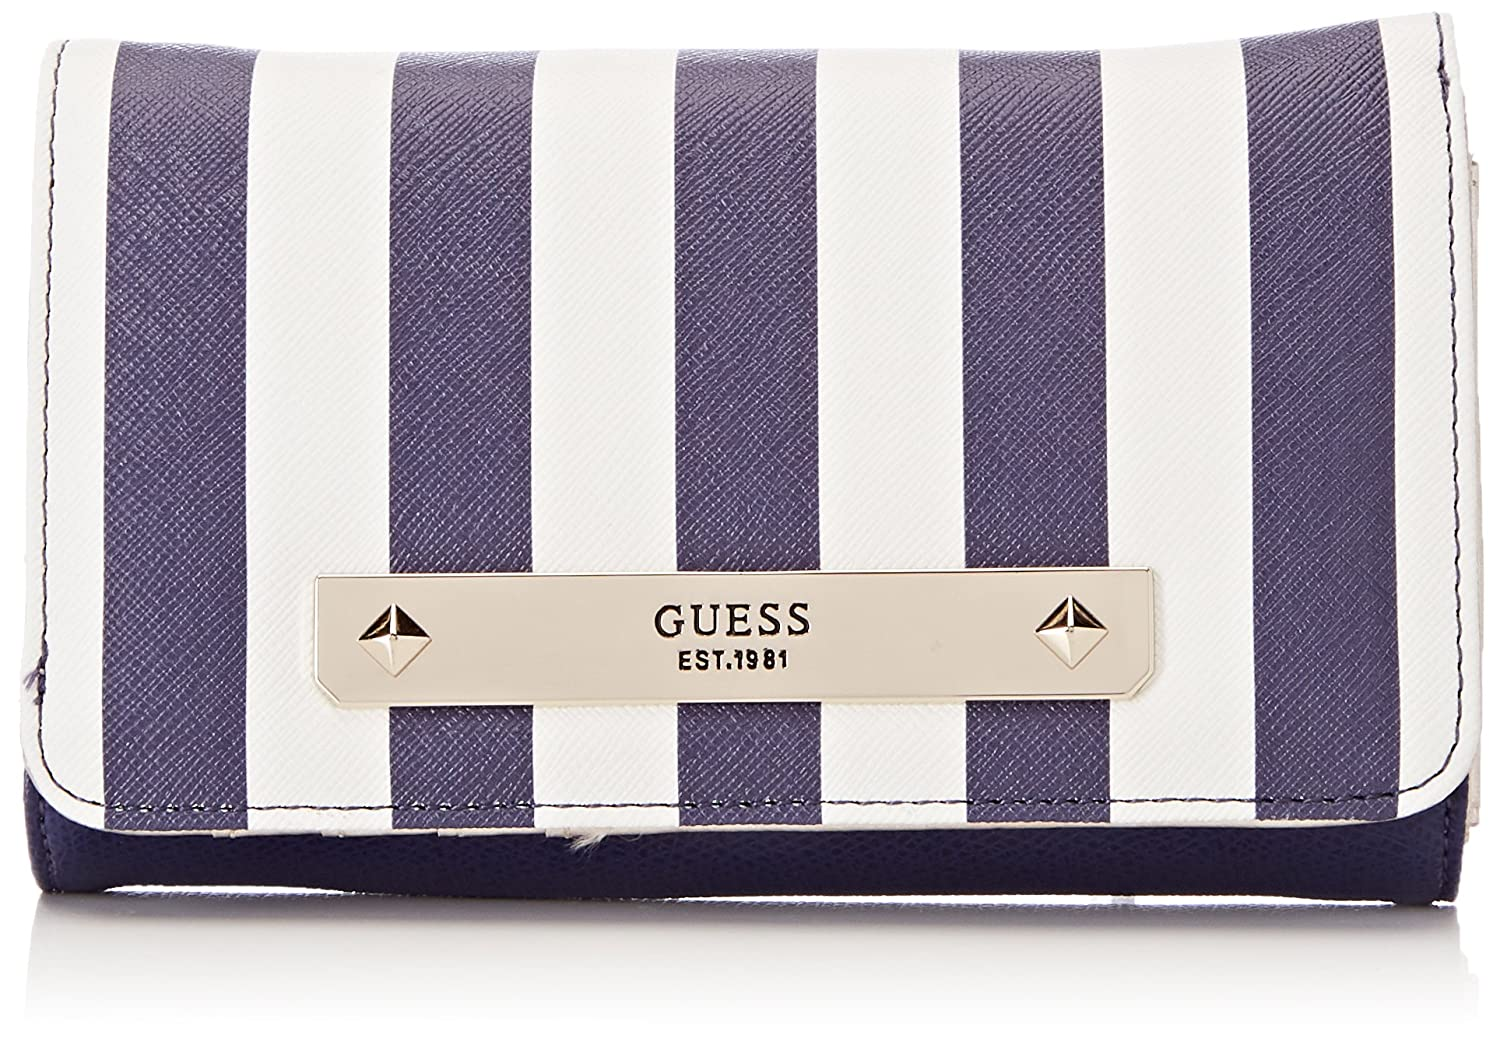 Guess - Slg Wallet, Carteras Mujer, Varios colores (Blue Stripe), 2x10x20 cm (W x H L)